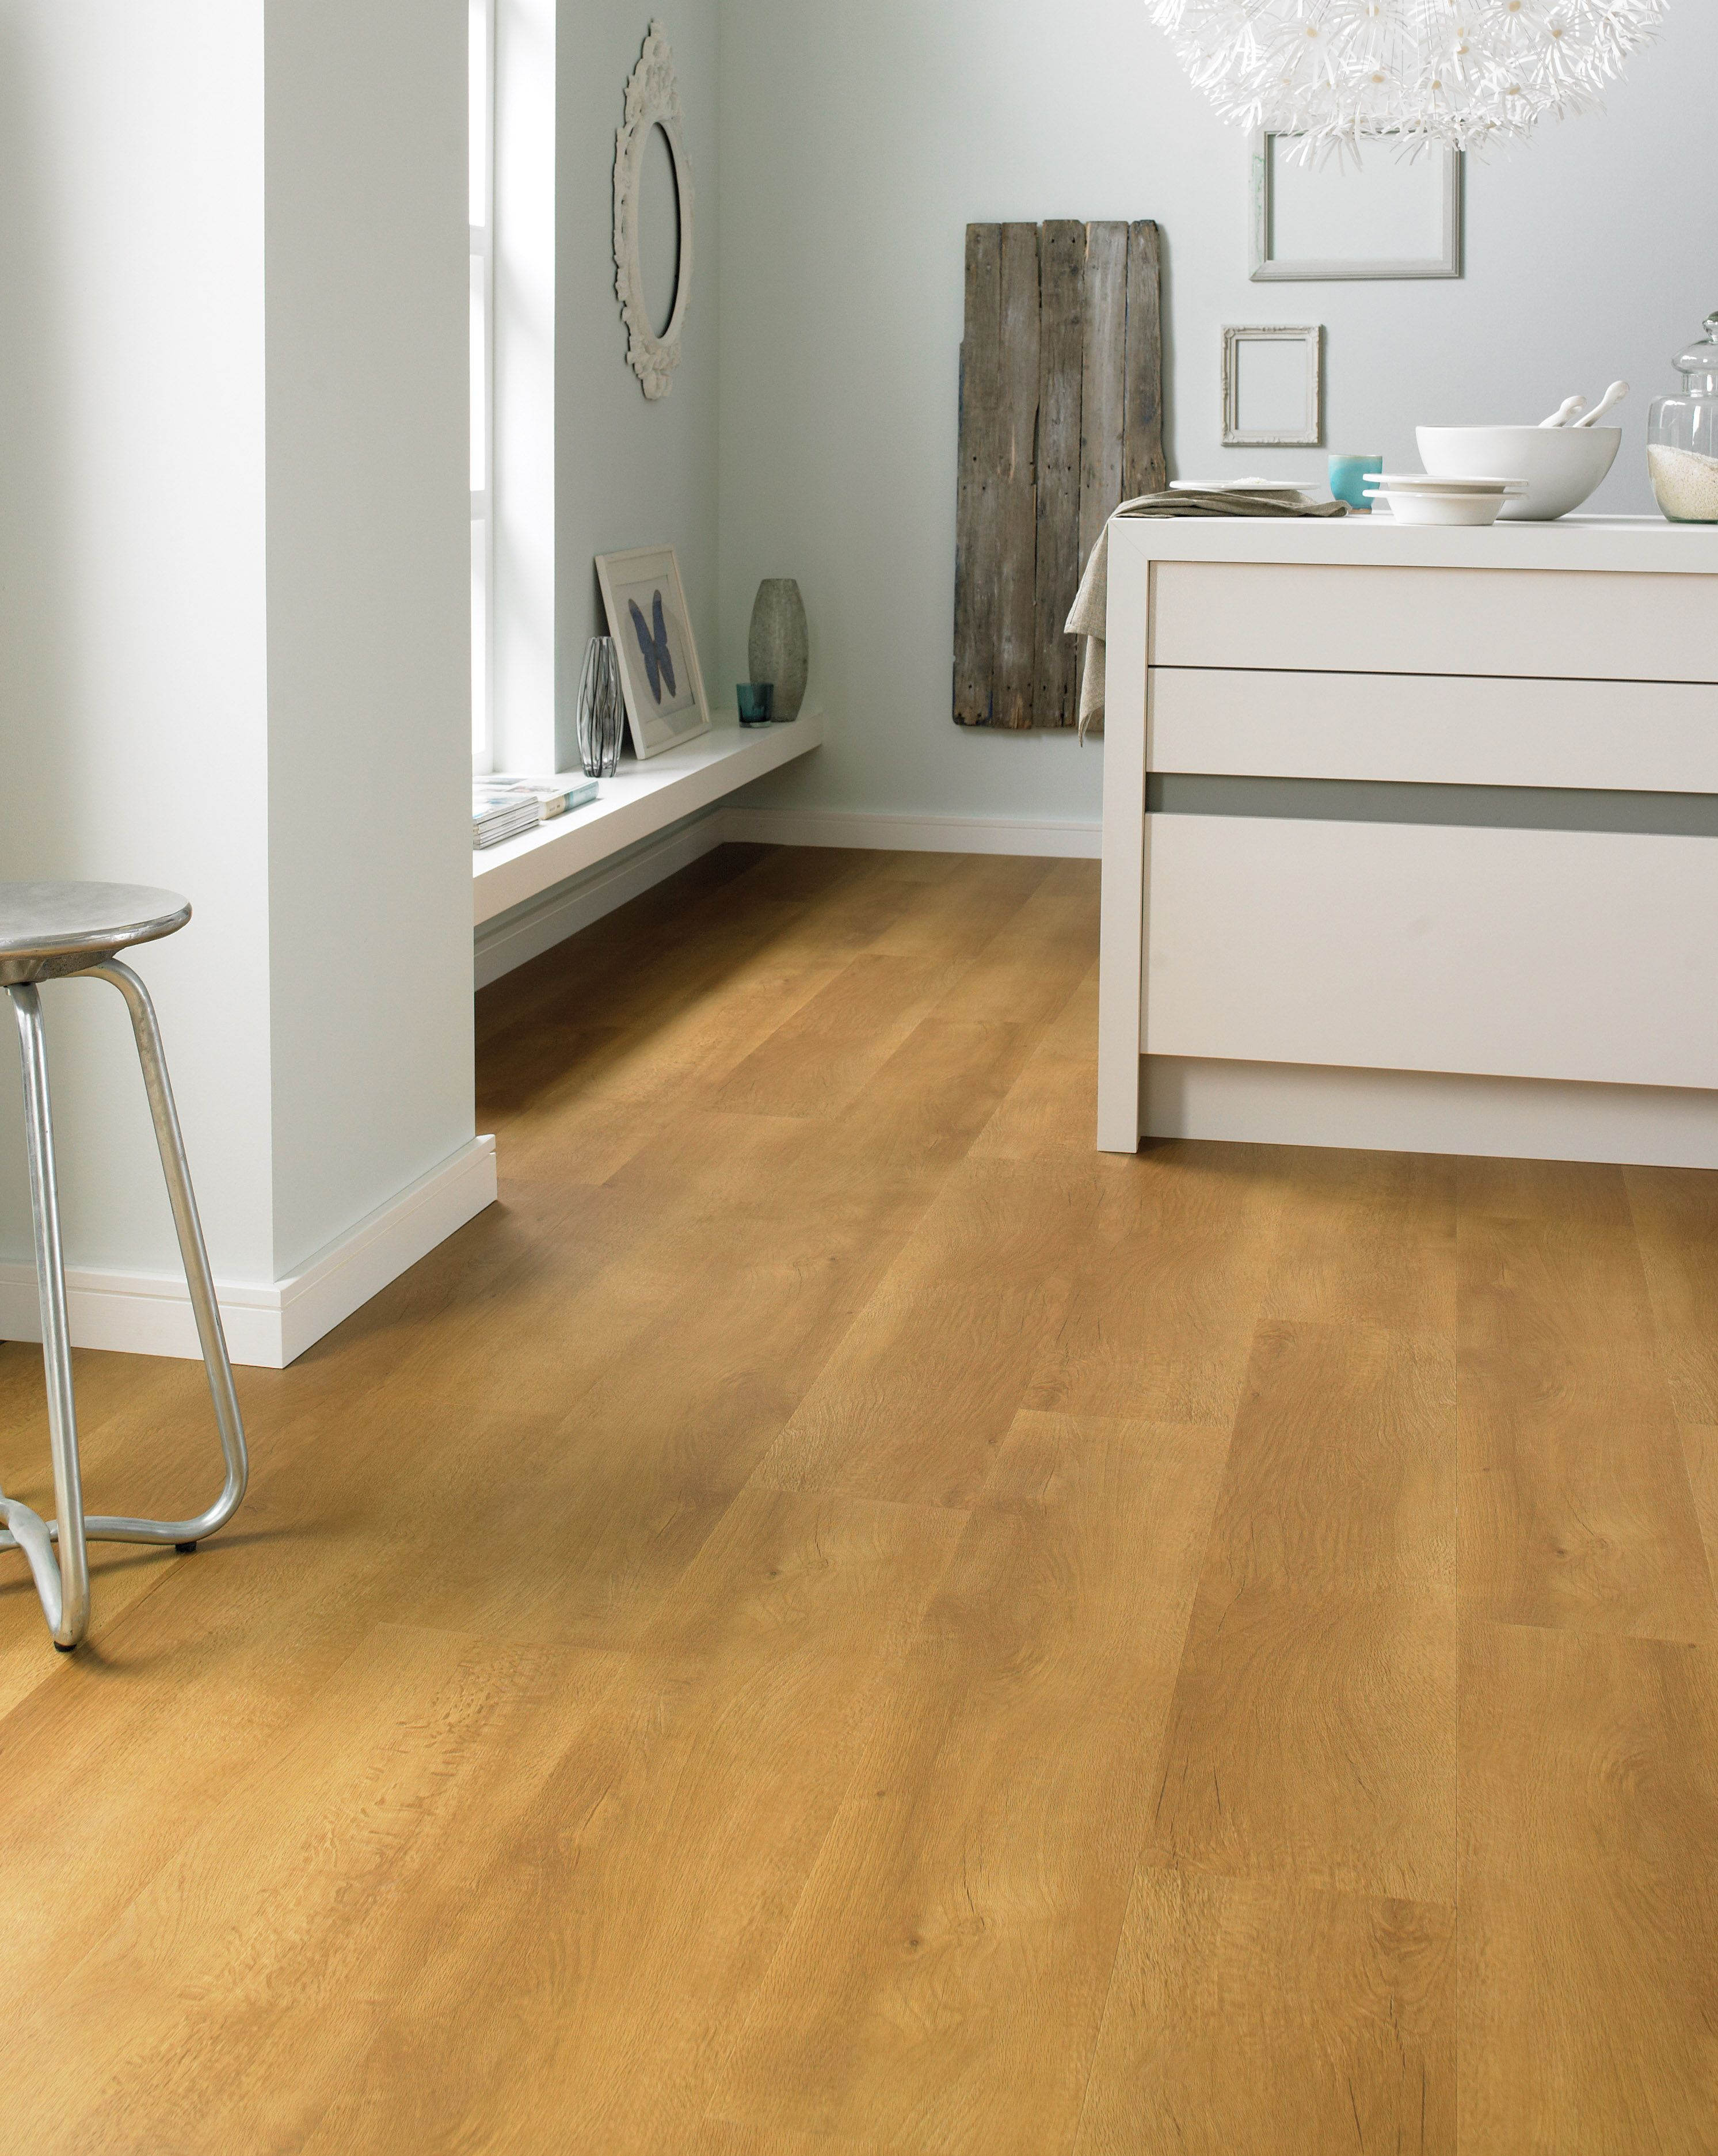 around crafted central pin a karndean artistically fireplace flooring floor